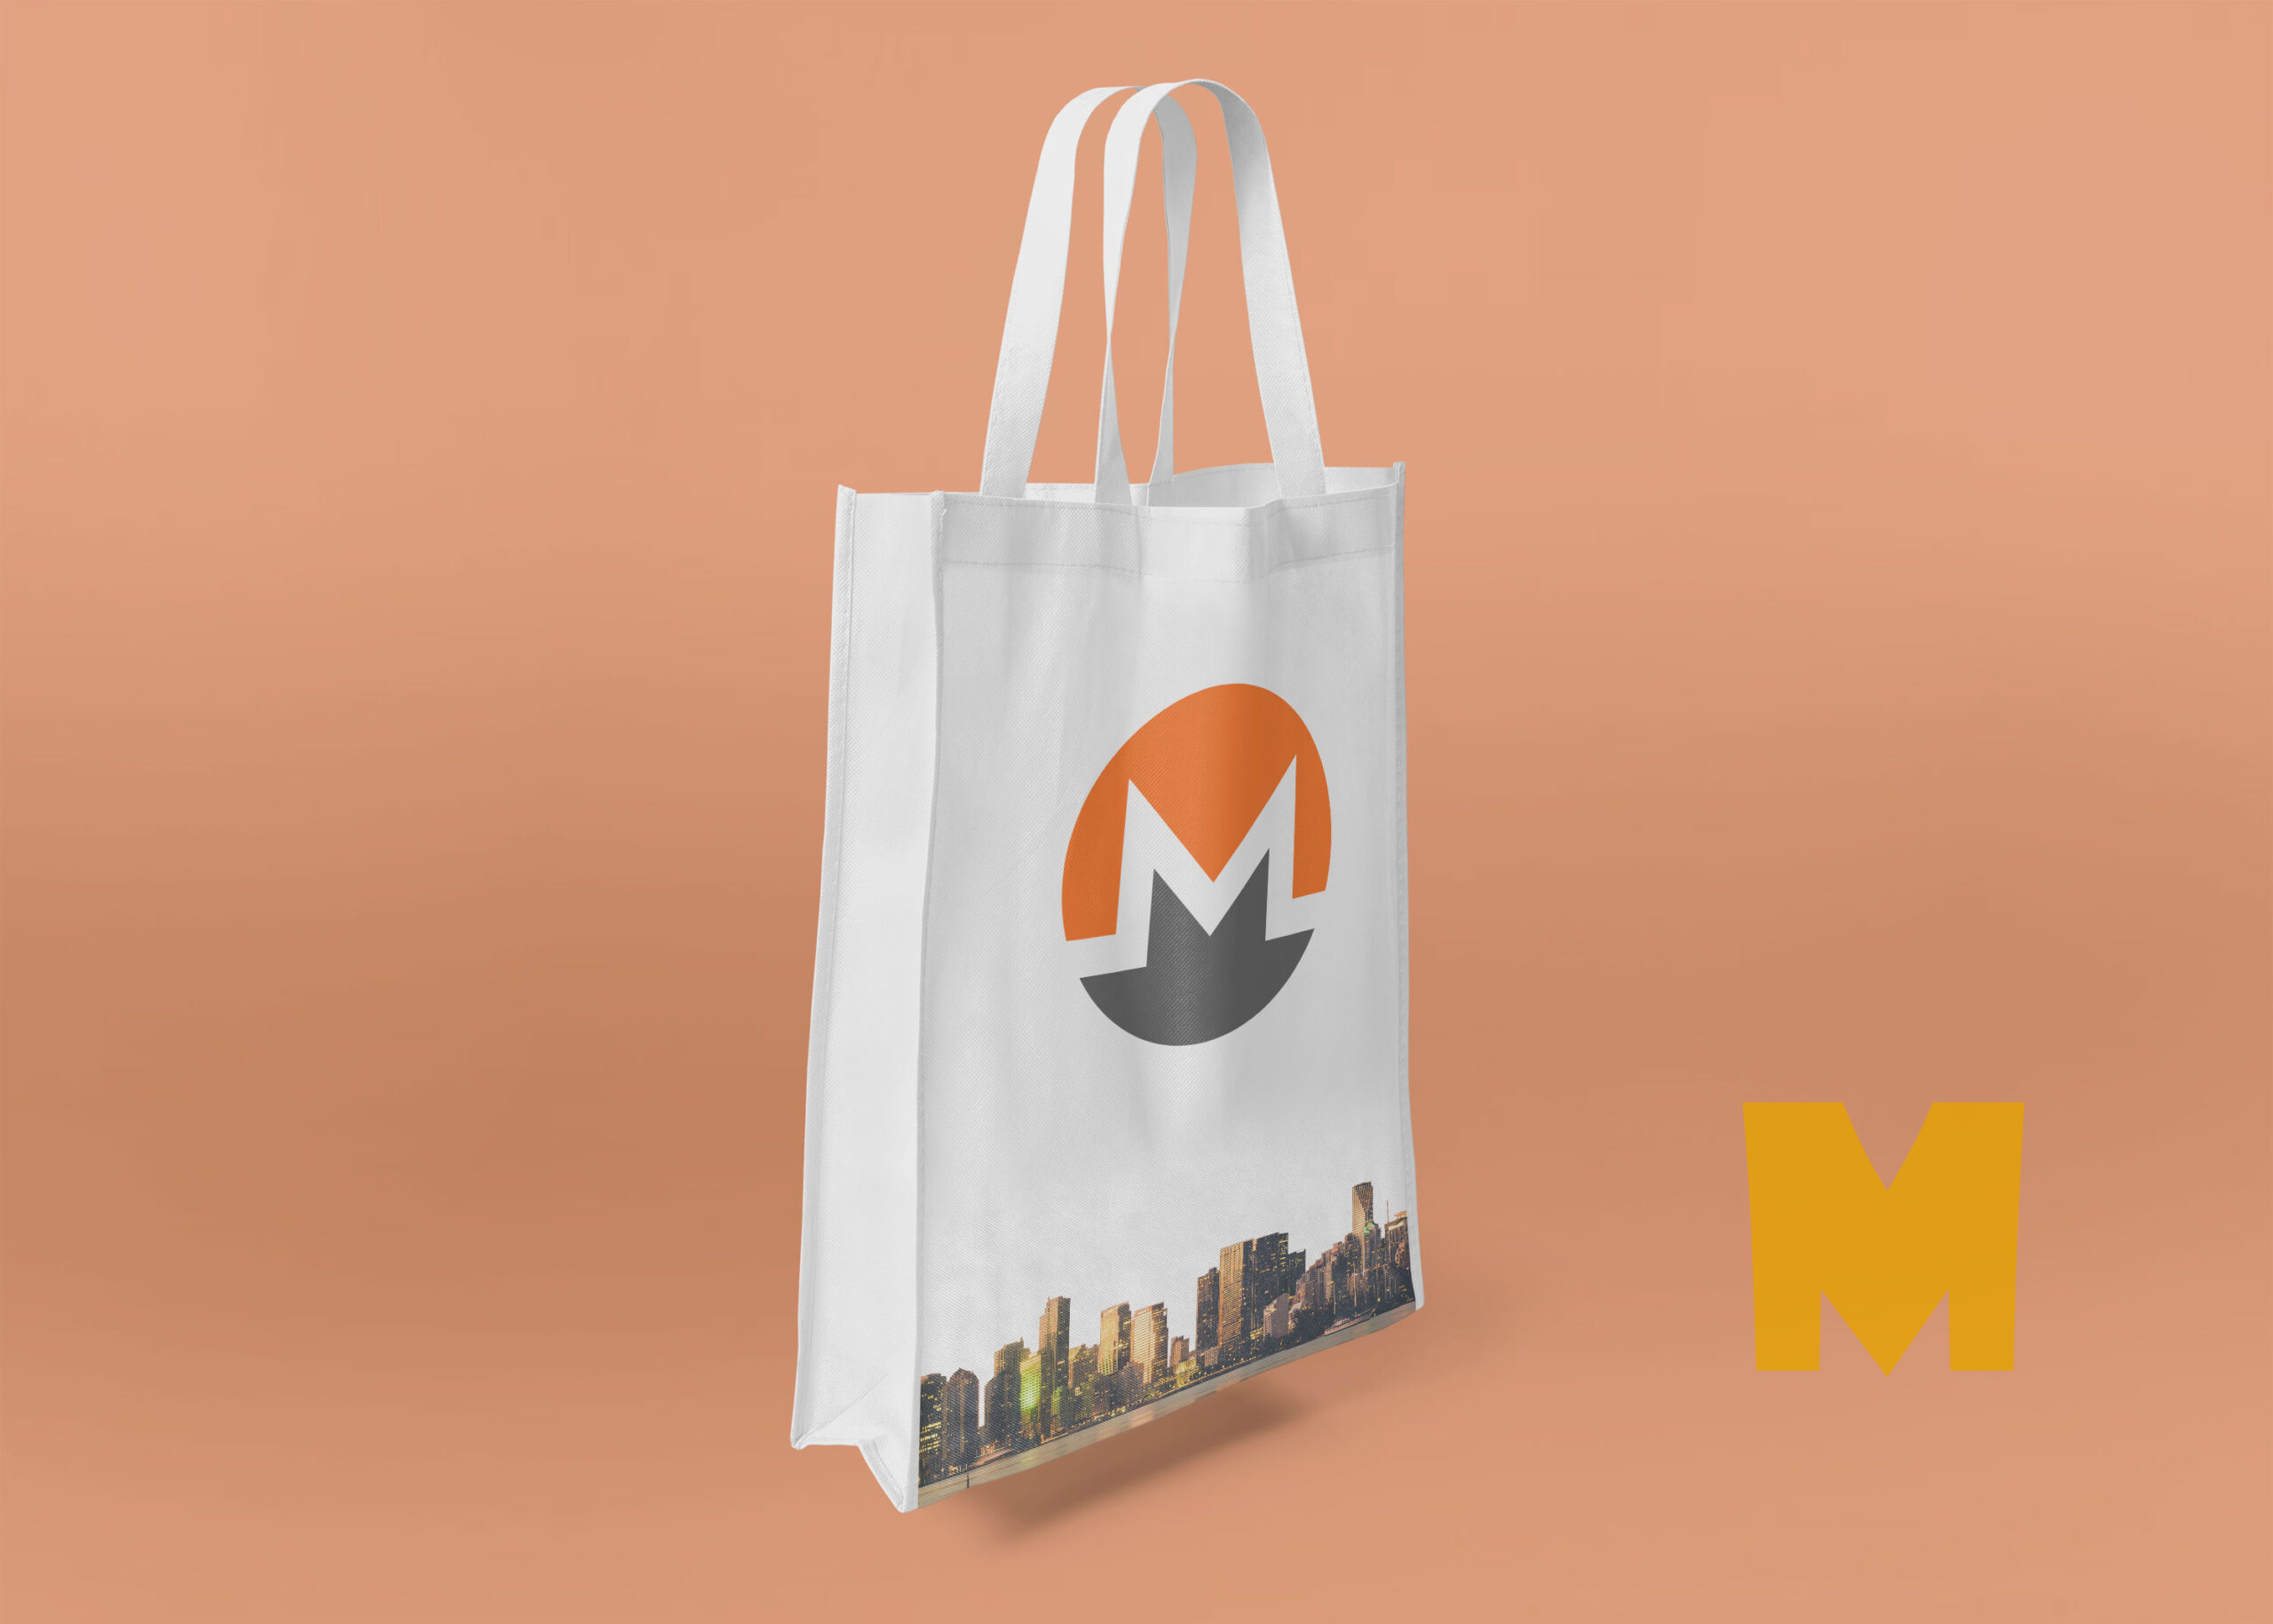 New Tote Bag Mockup 2019